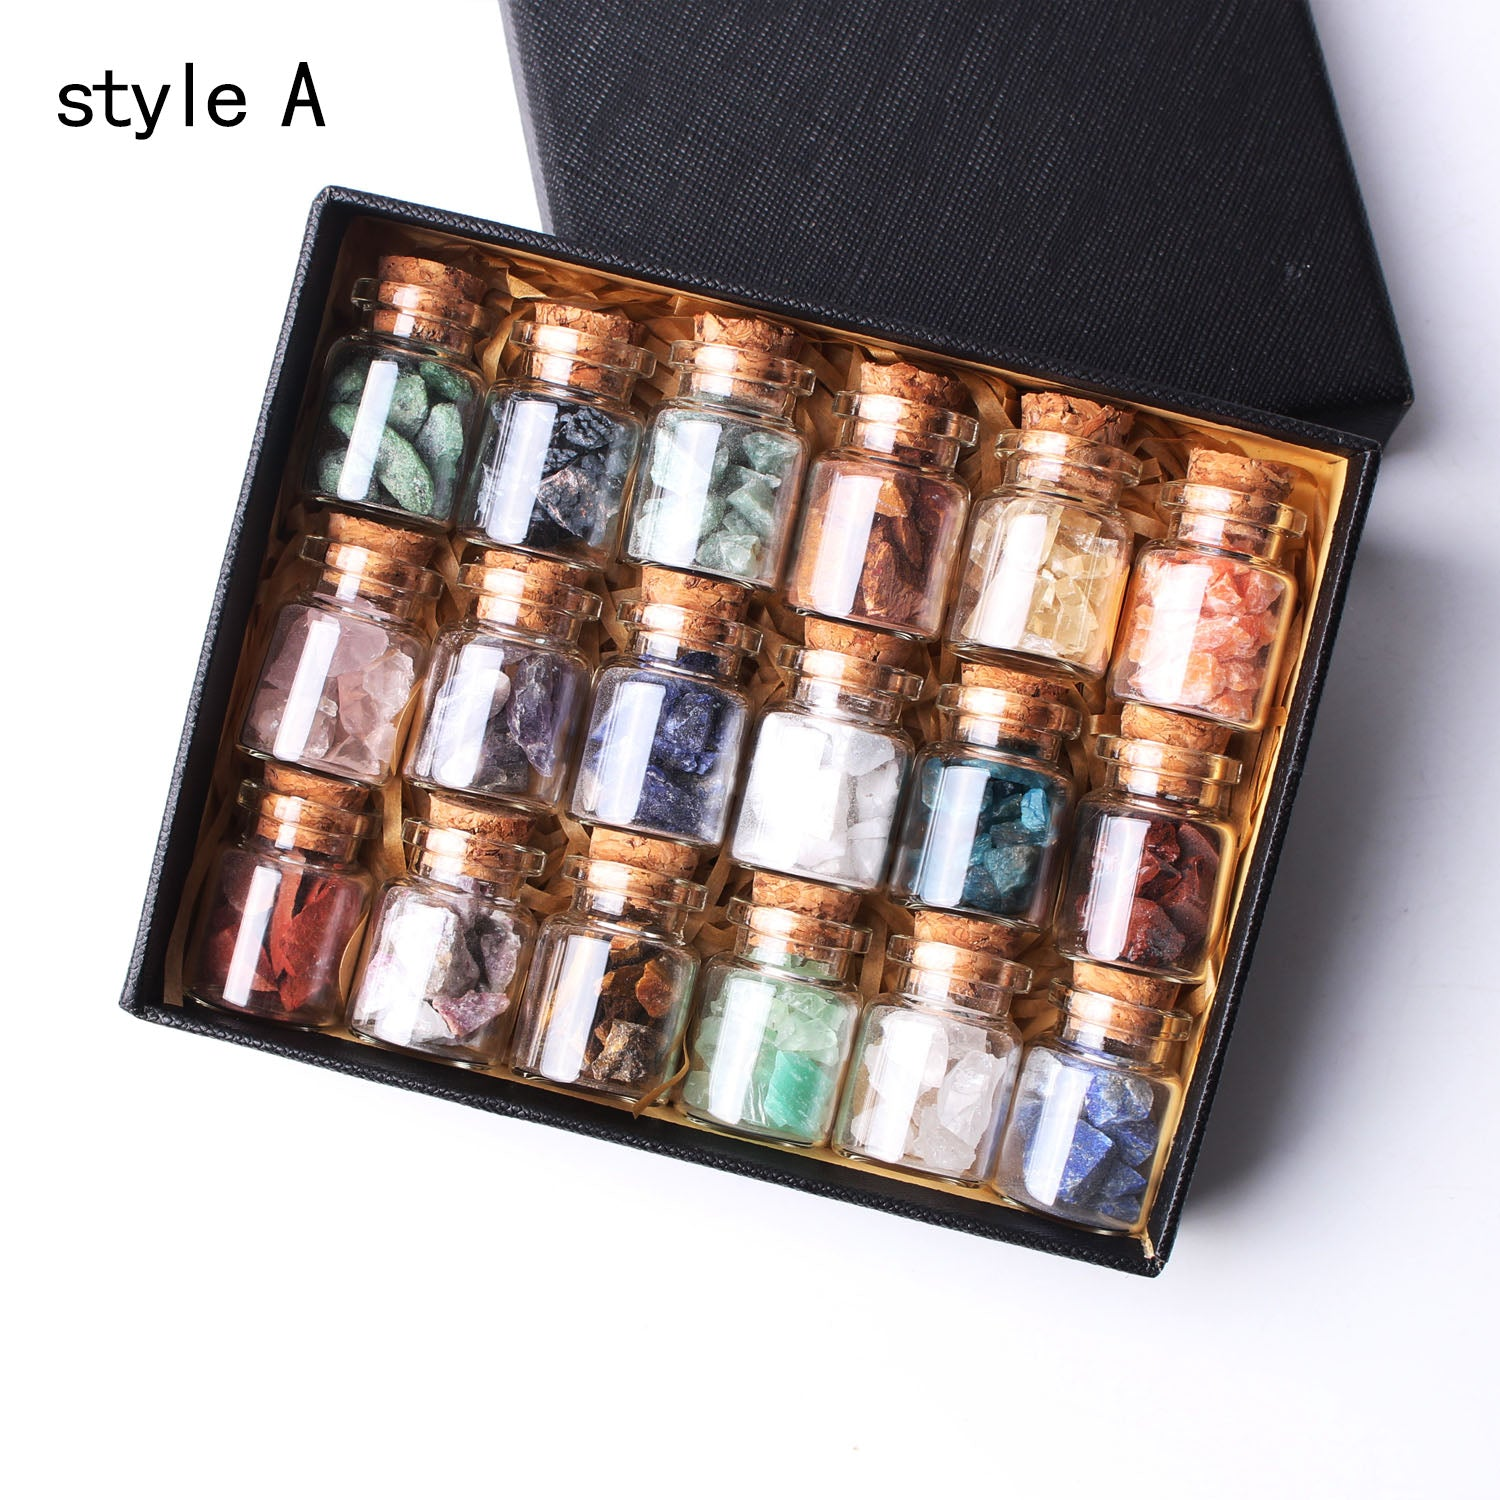 1 Set / 18Pcs Nice Collection Genuine Healing Stones in Bottles and Storage Box